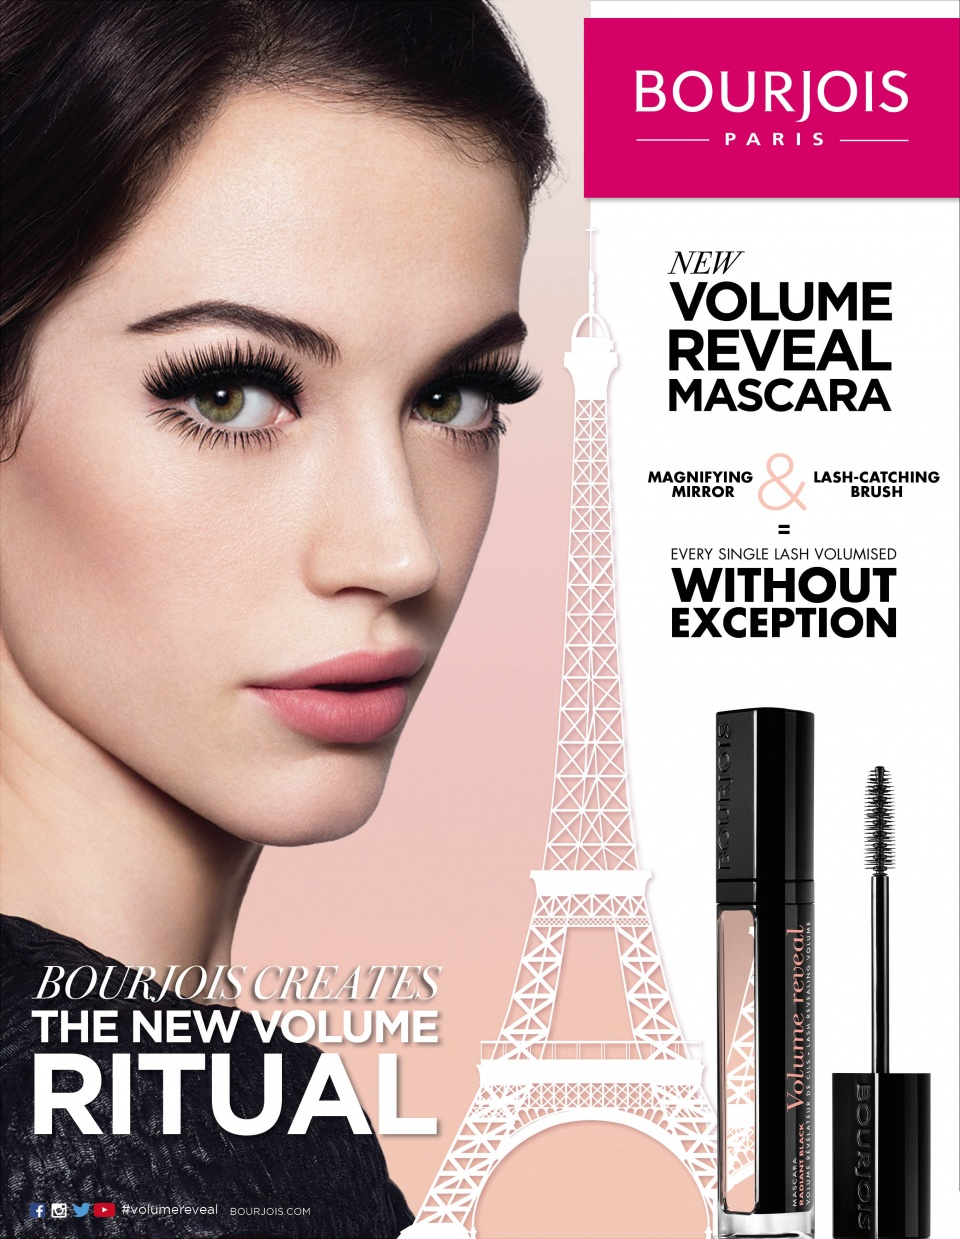 Bourjois - Volume Reveal Mascara